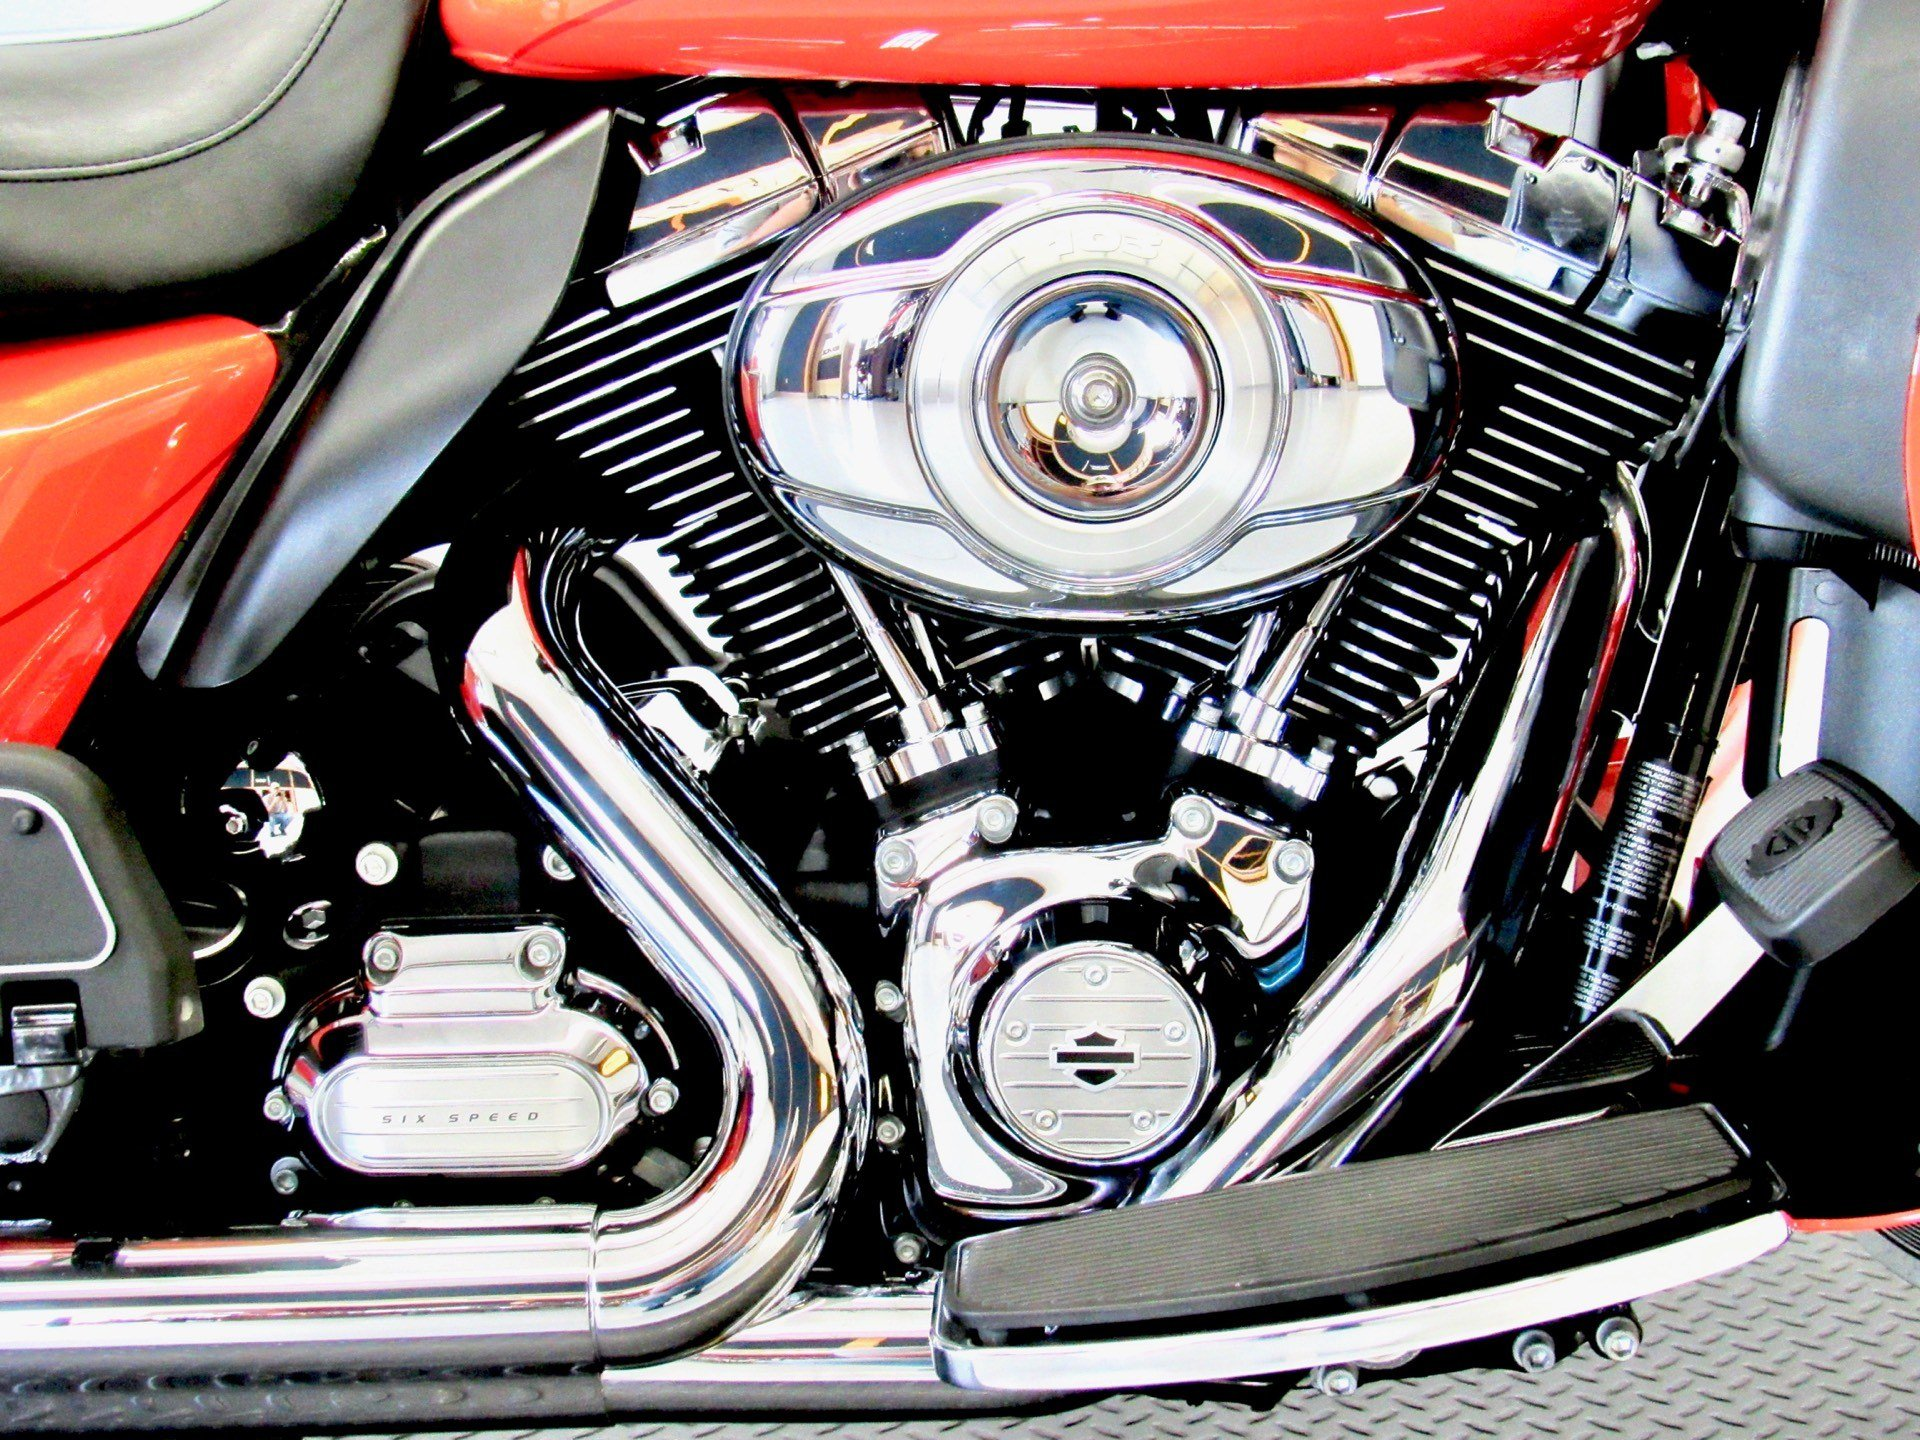 2012 Harley-Davidson Electra Glide® Ultra Limited in Fredericksburg, Virginia - Photo 14